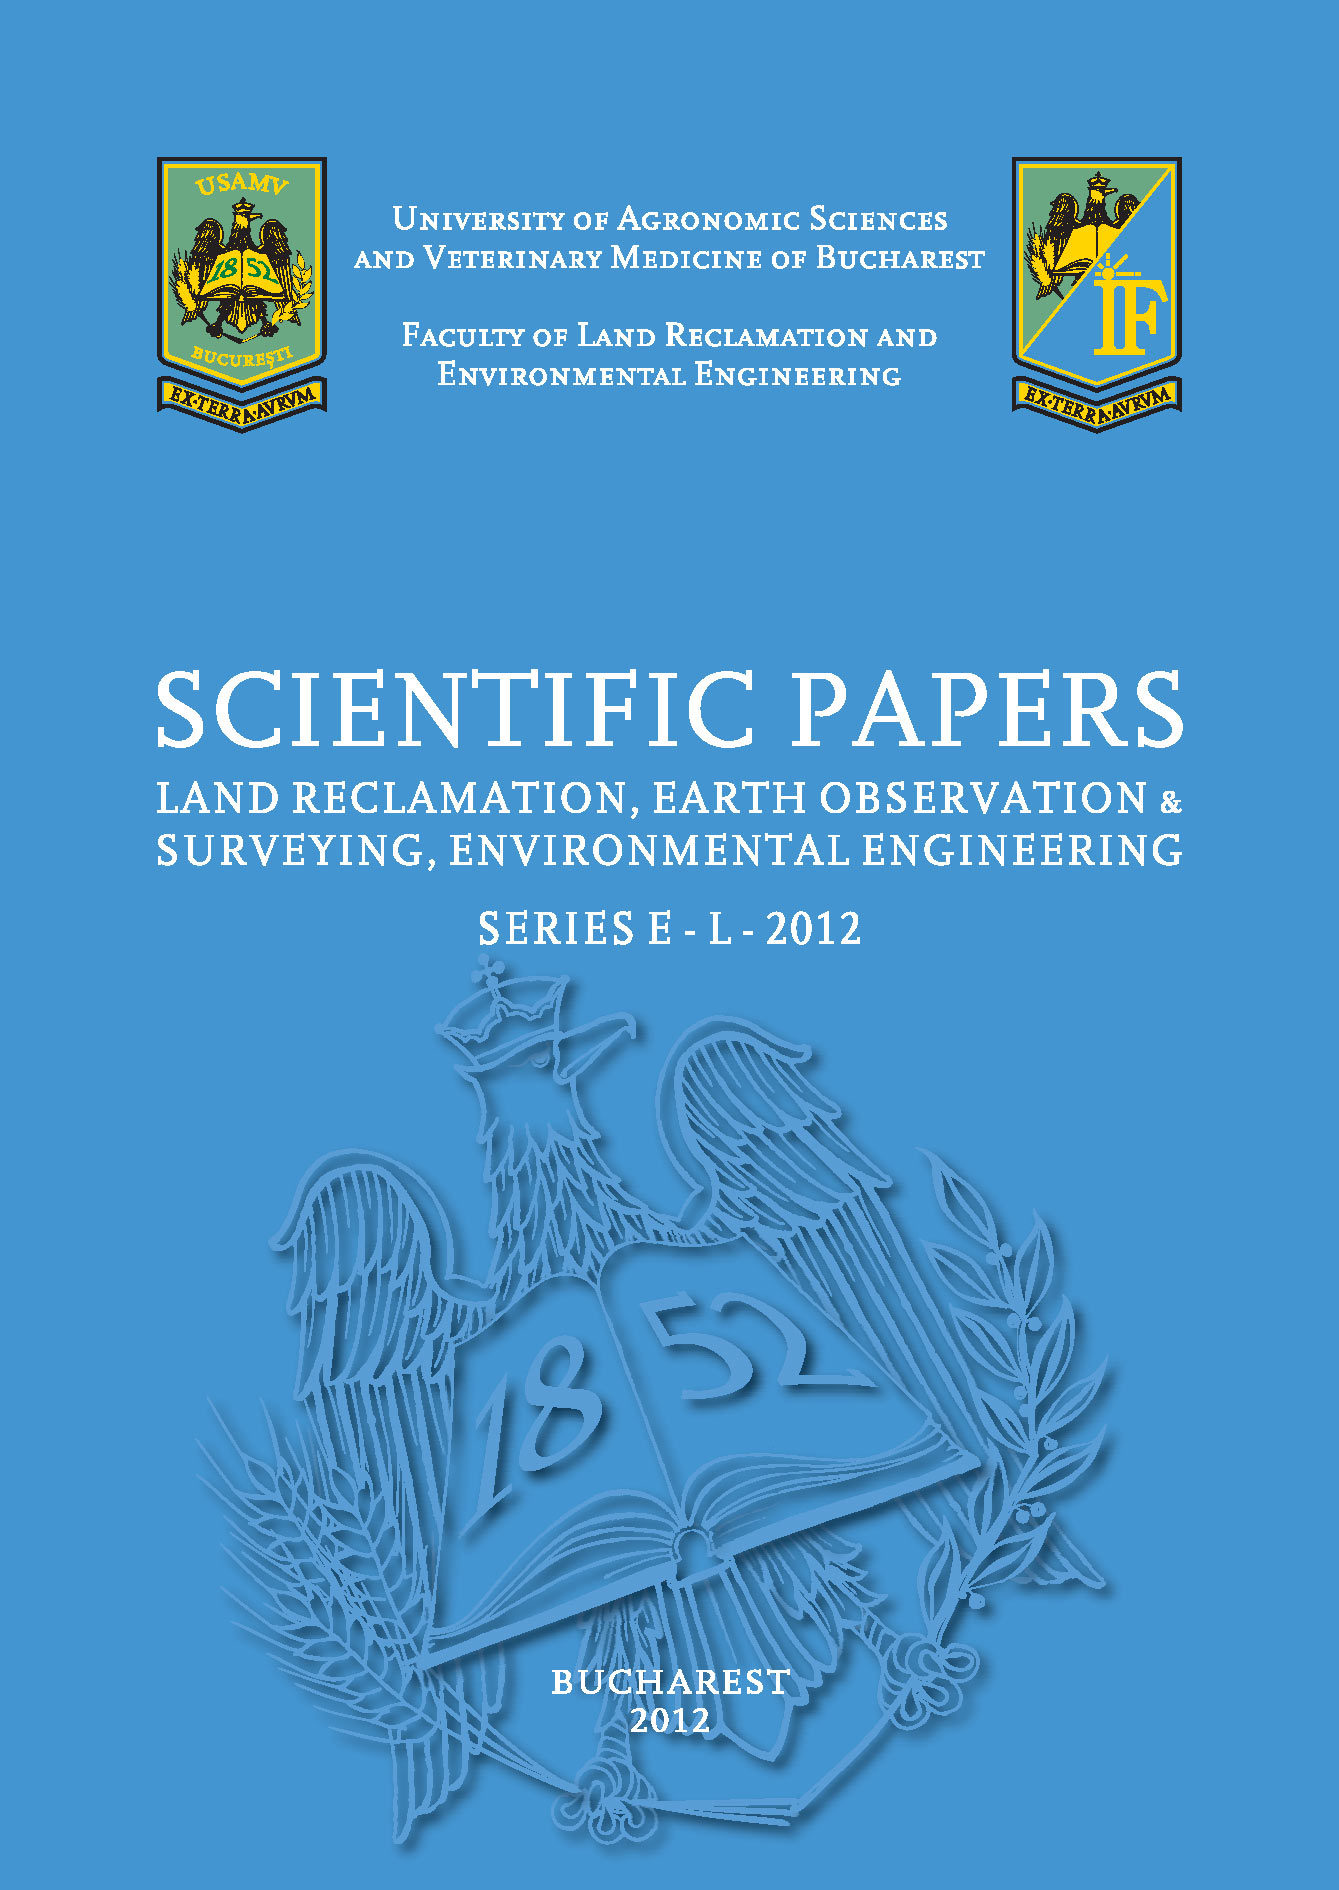 Scrientific Papers Series E. Land Reclamation Earth Observation and Surveying Environmental Engineering